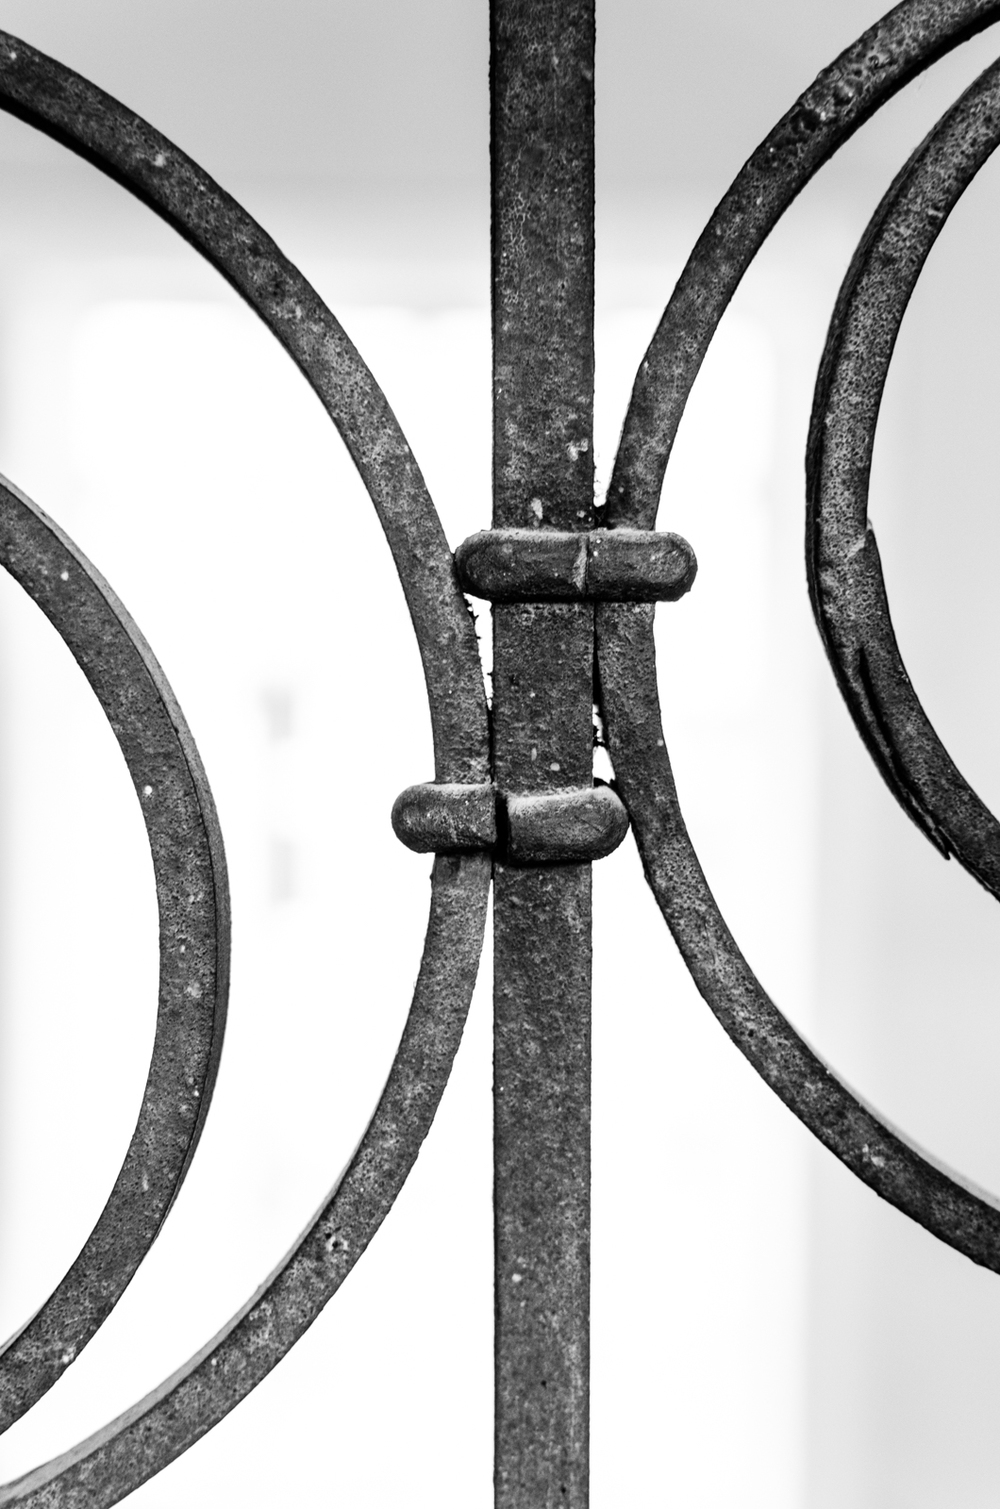 Project 365: #153 - Wrought Iron